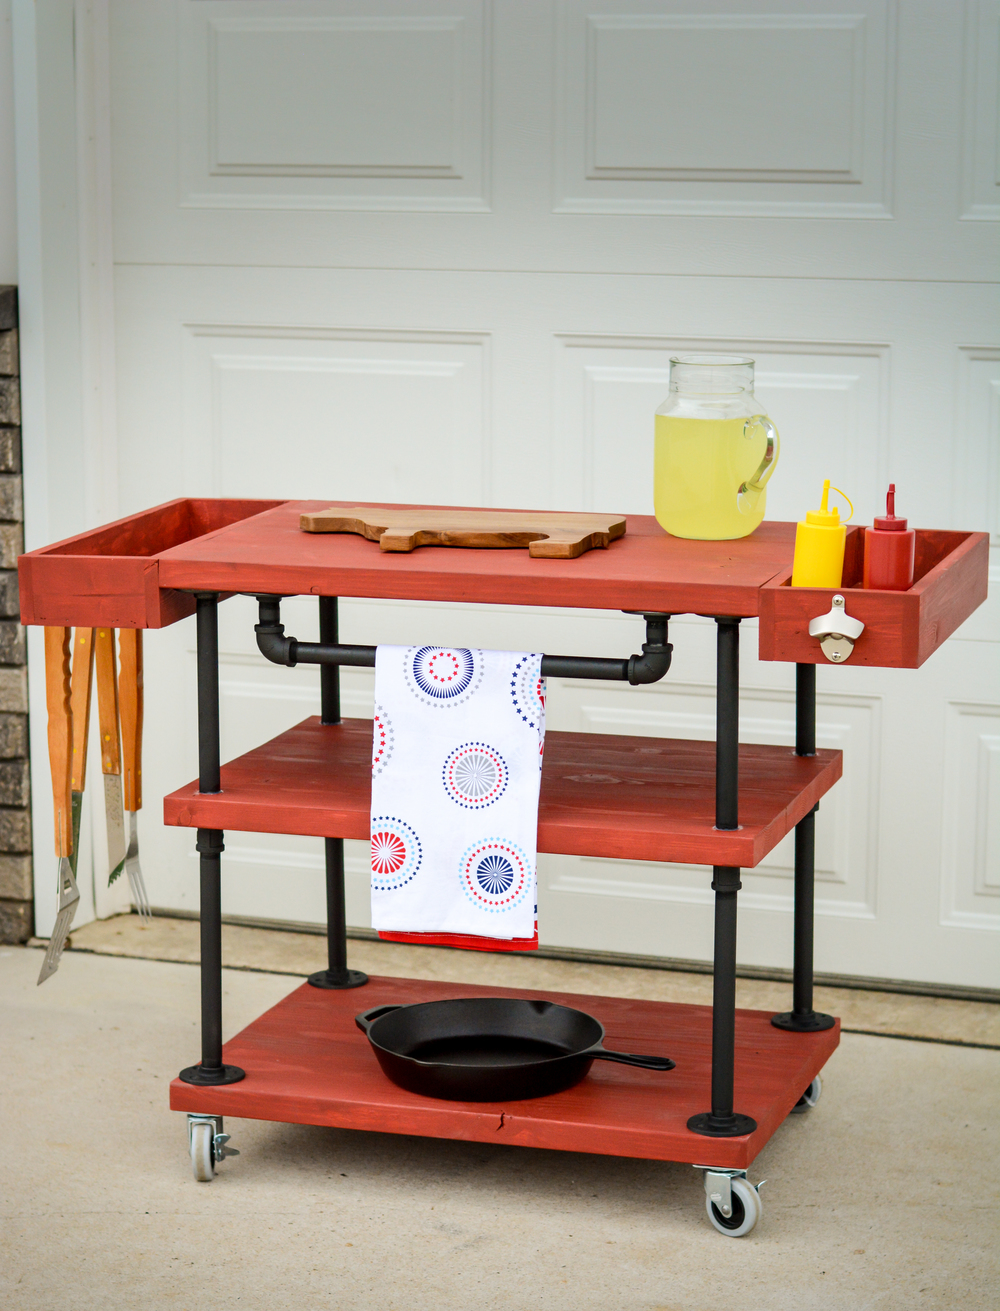 How to build a grill cart the home depot diy workshop decor and want to make your own rolling grill cart join us on saturday at the home depot in des moines ia where well be sharing our tips and tricks solutioingenieria Images